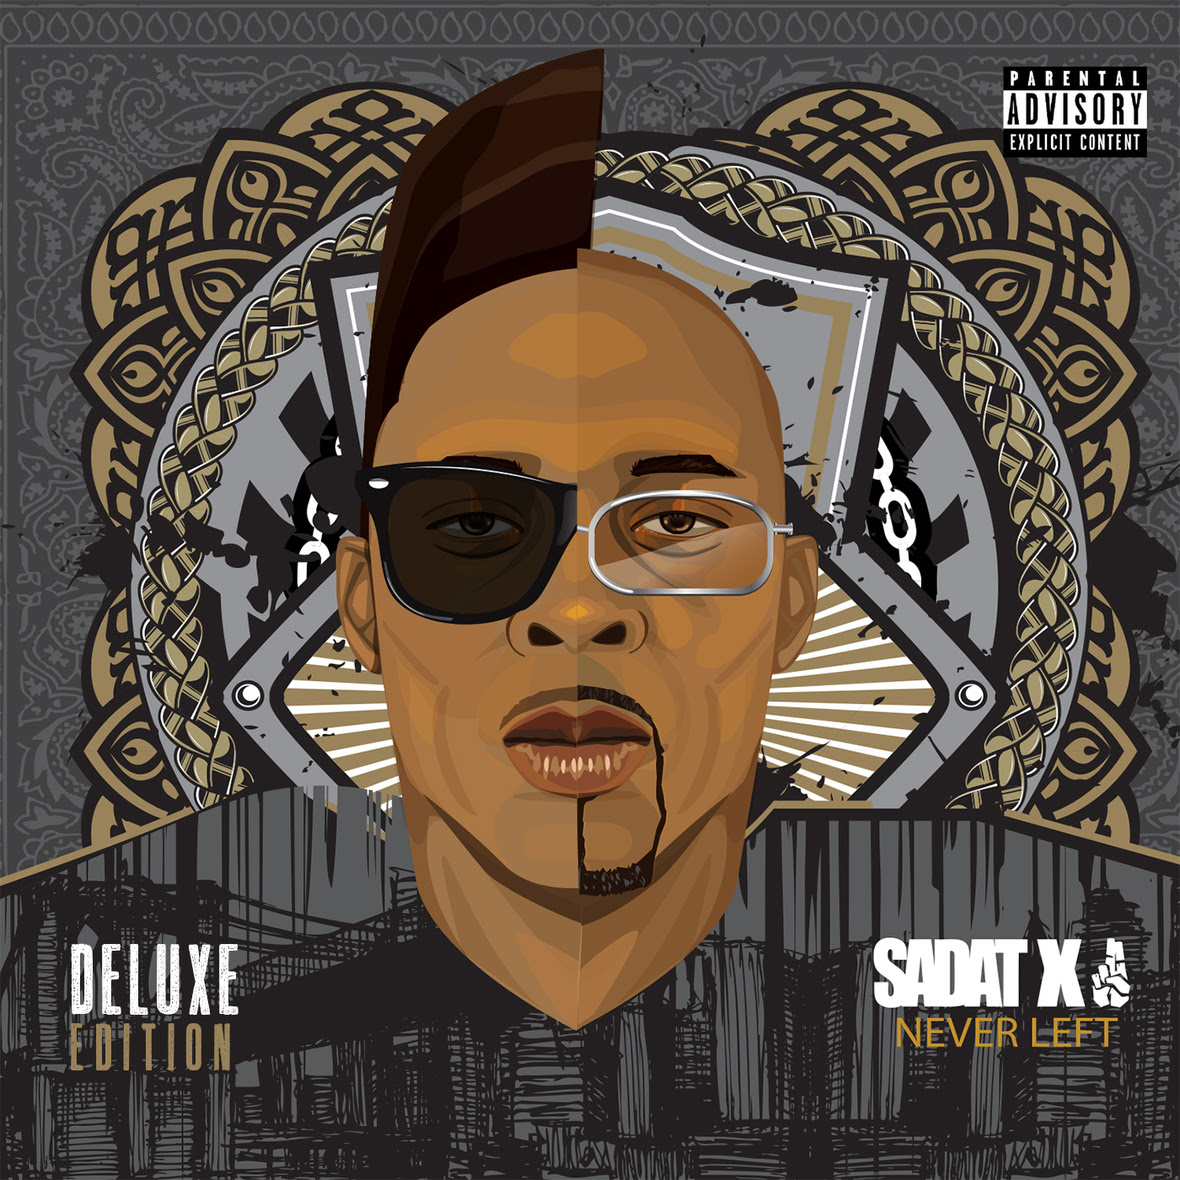 Worksheets X For What For Kid sadat x what up kid video deluxe album sadatx www hiphopondeck